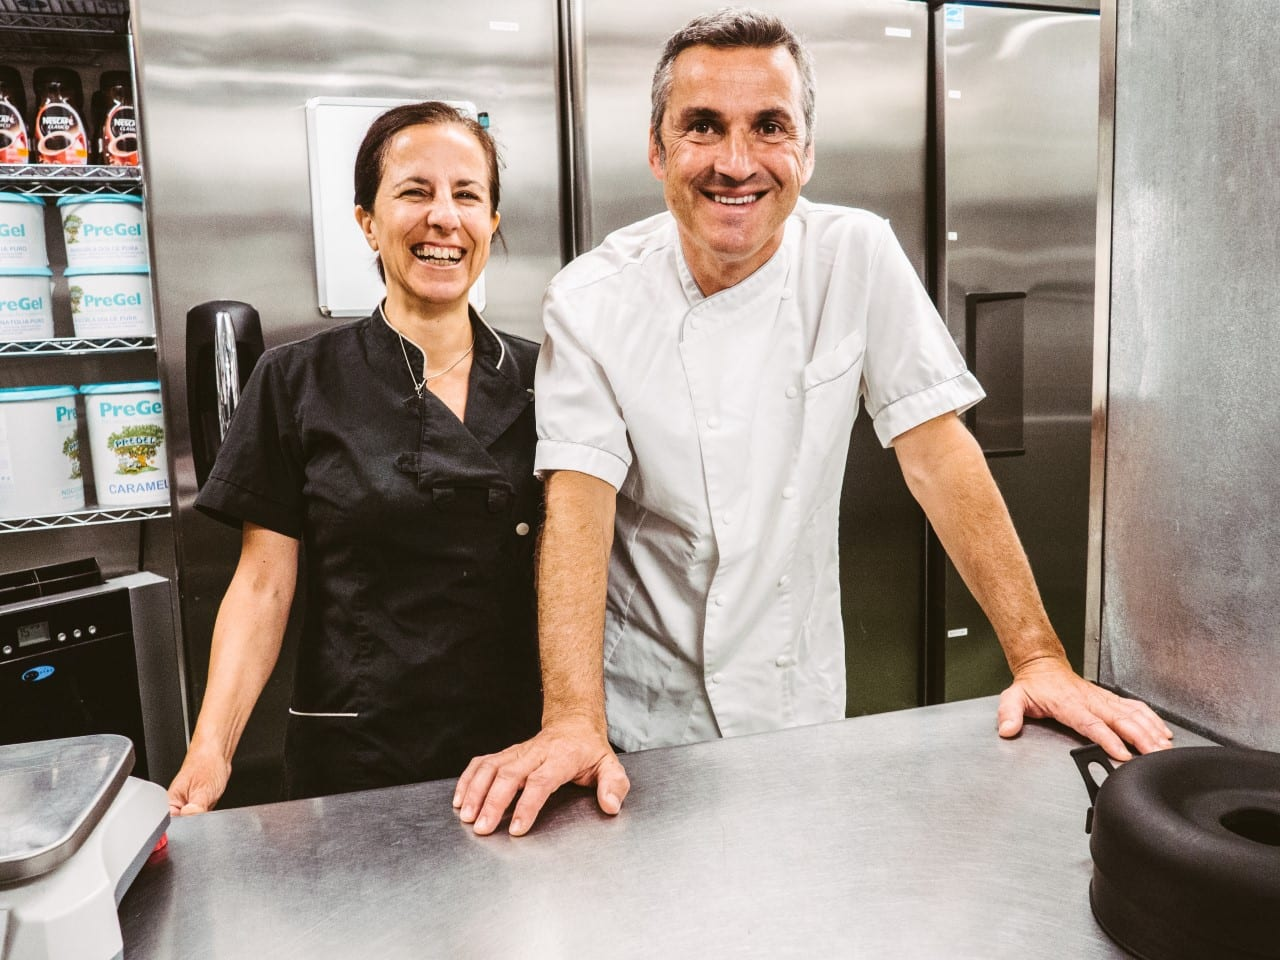 Executive Gelato Chef Monica Maccioni and Owner Andrea Racca